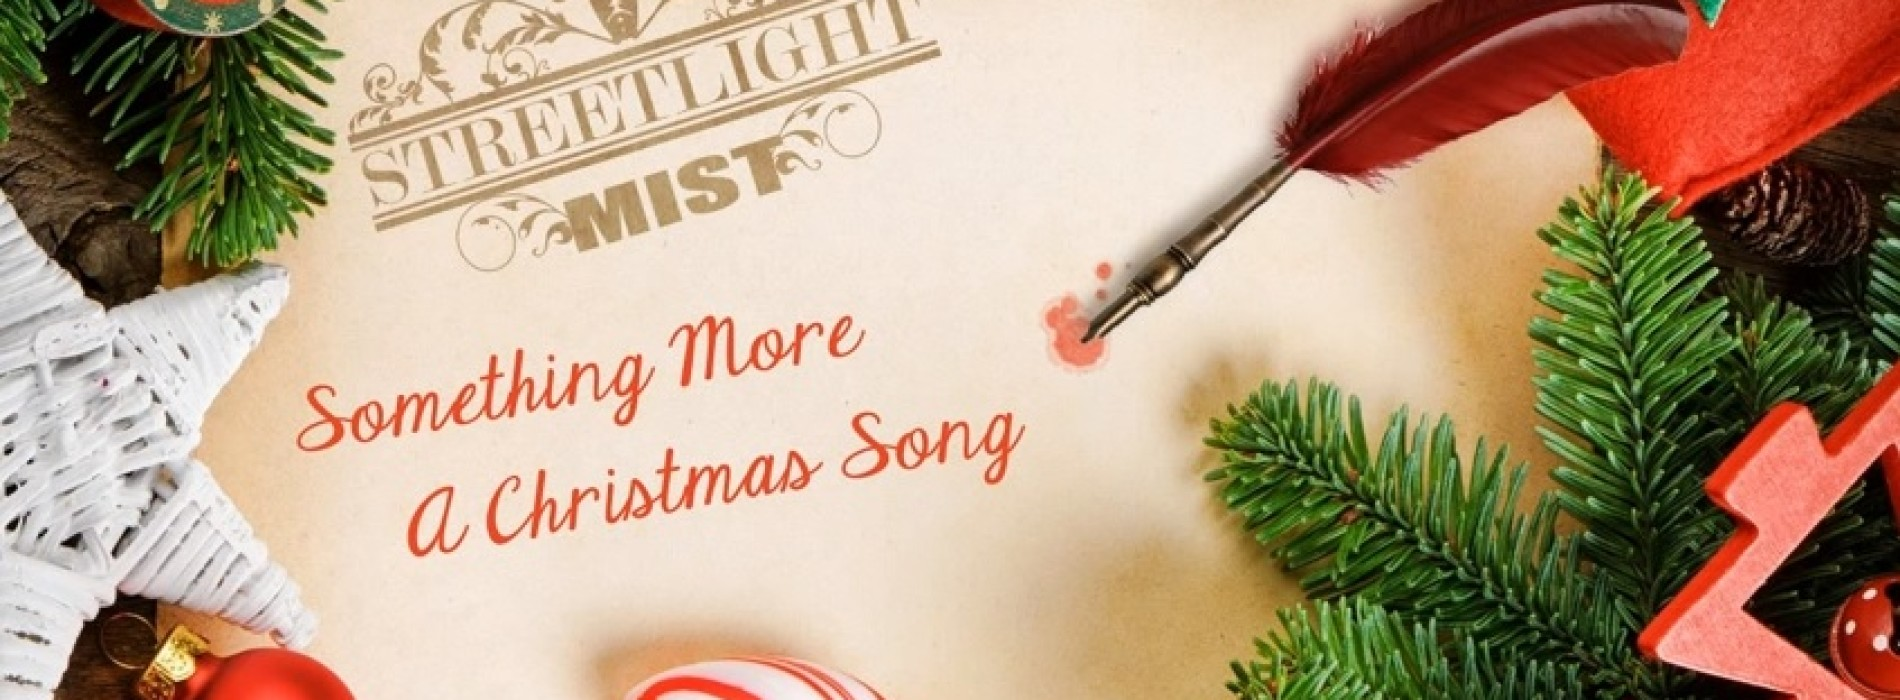 Decibel XMas Picks: #1 – Something More By Street Light Mist